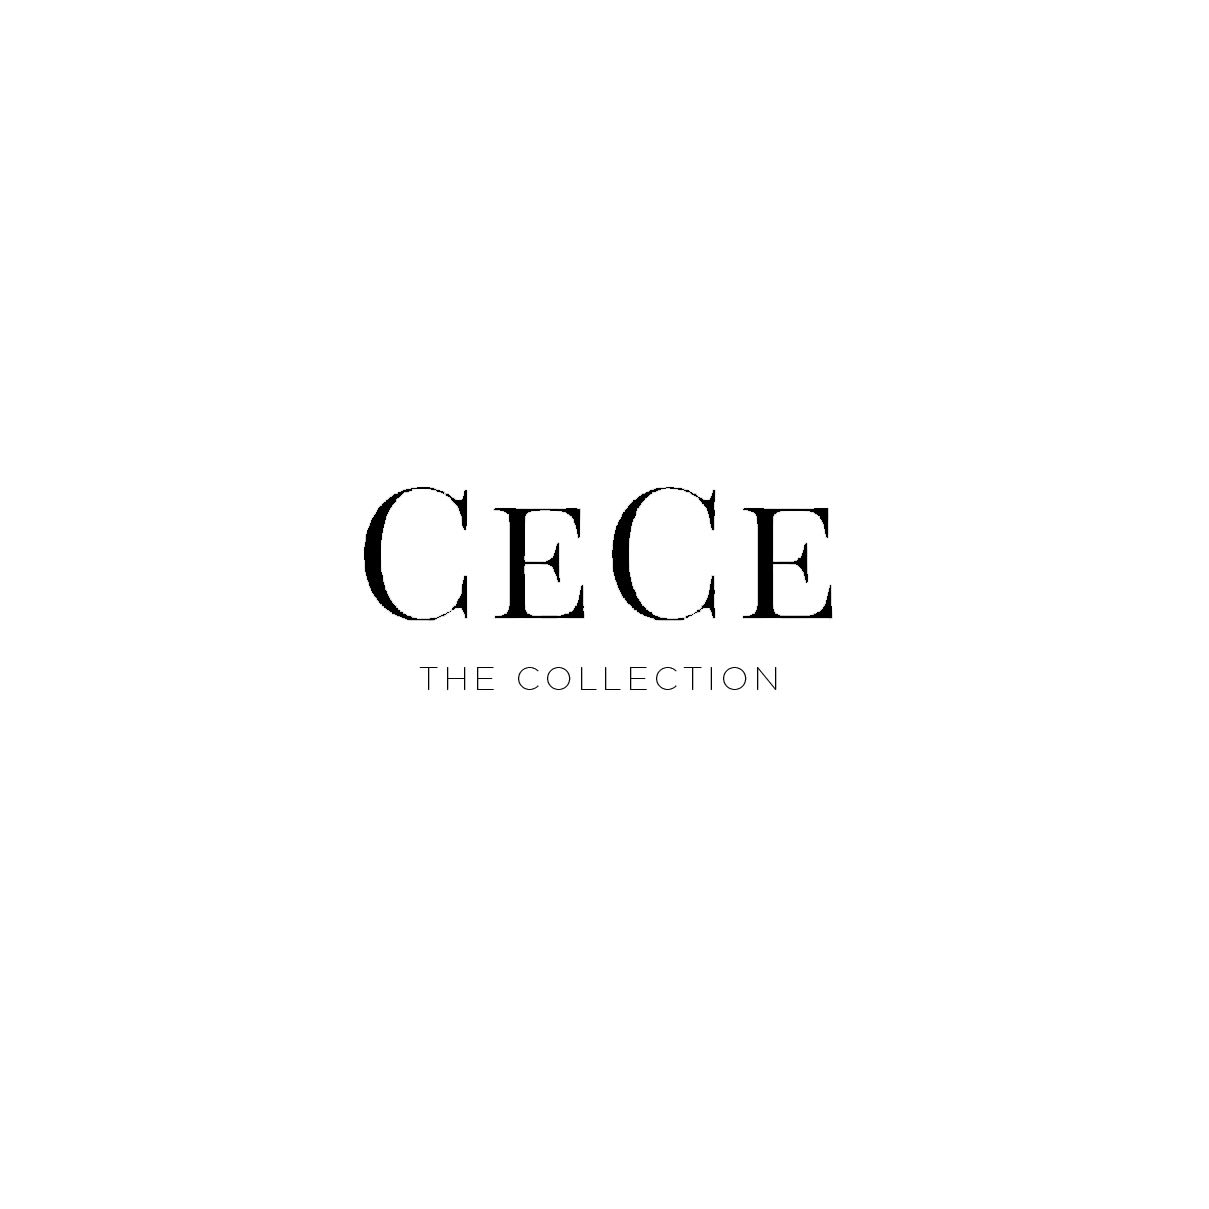 Cece the collection